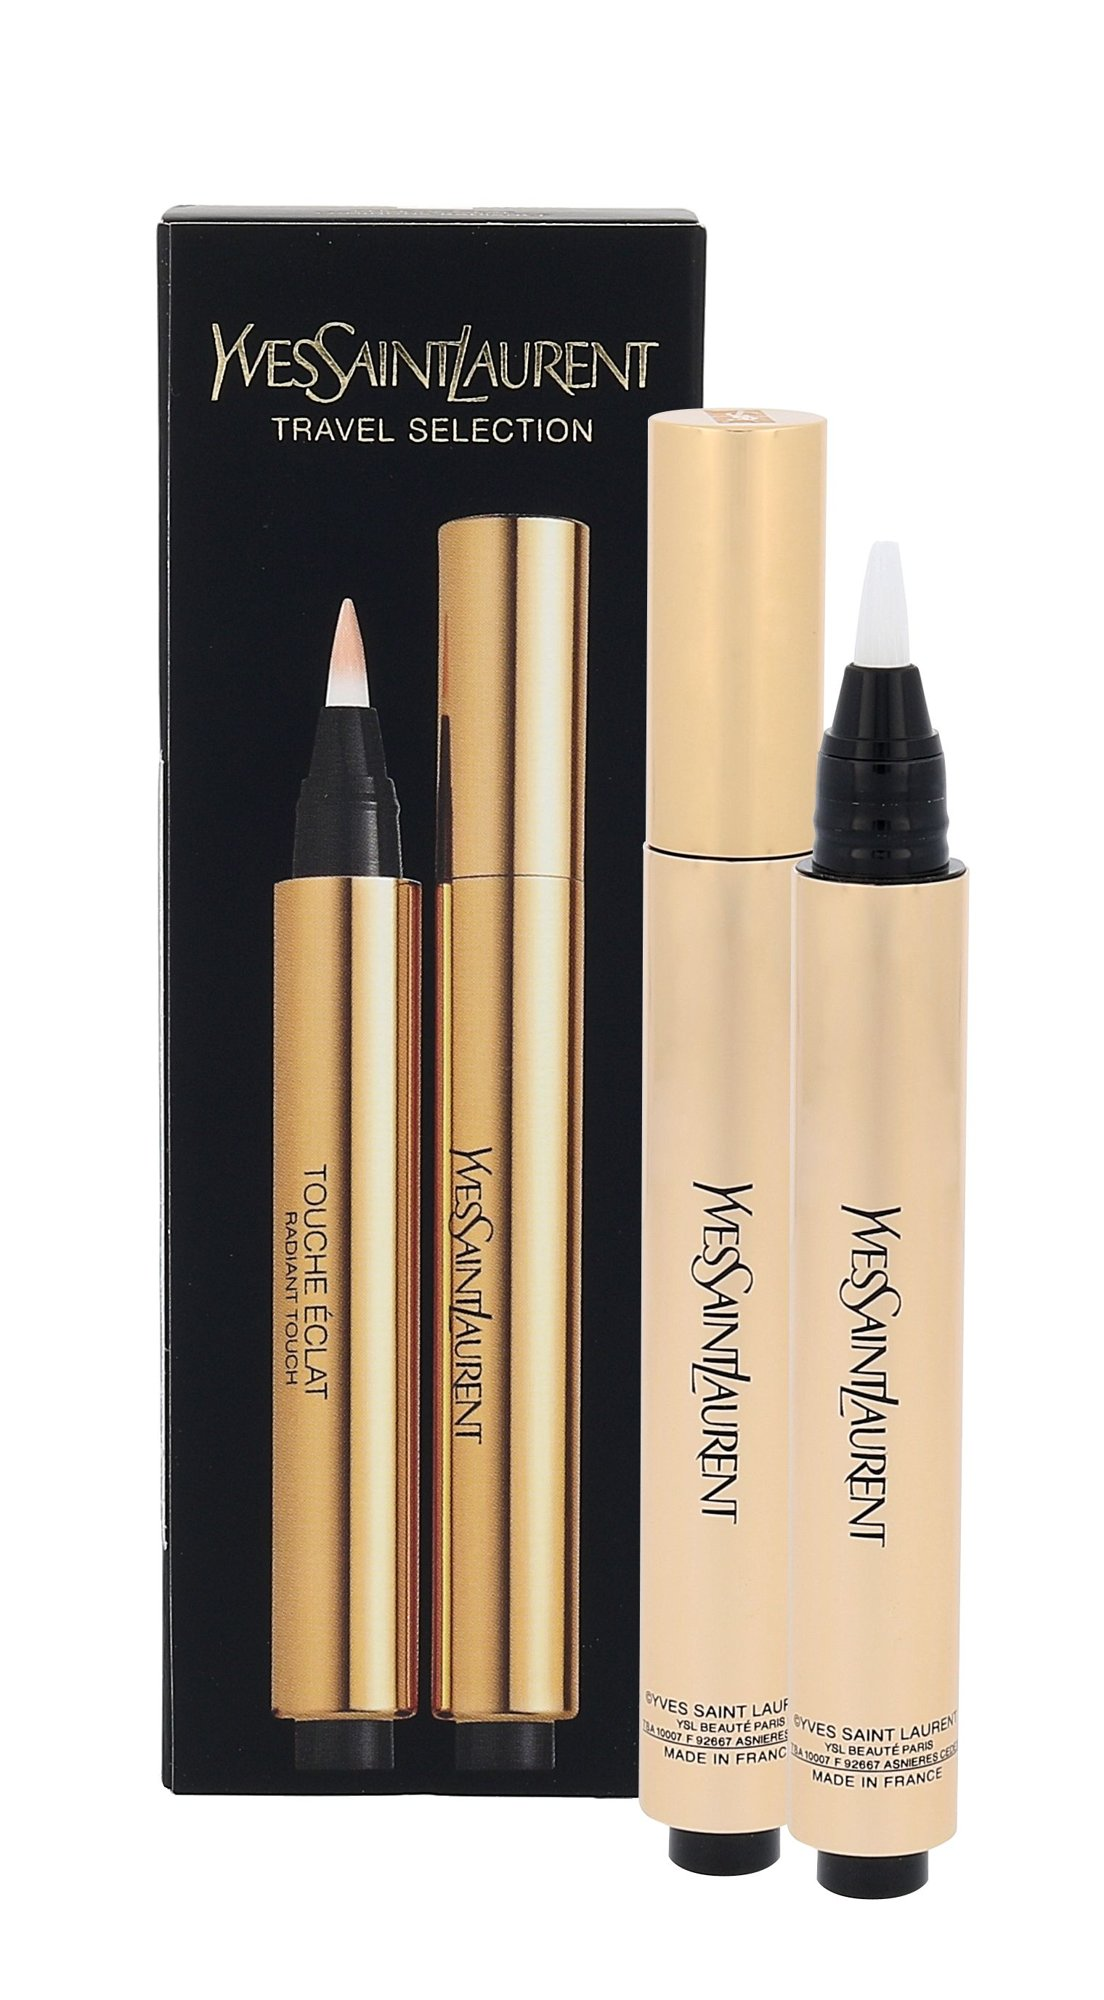 Yves Saint Laurent Touche Eclat Cosmetic 2x2,5ml No.1